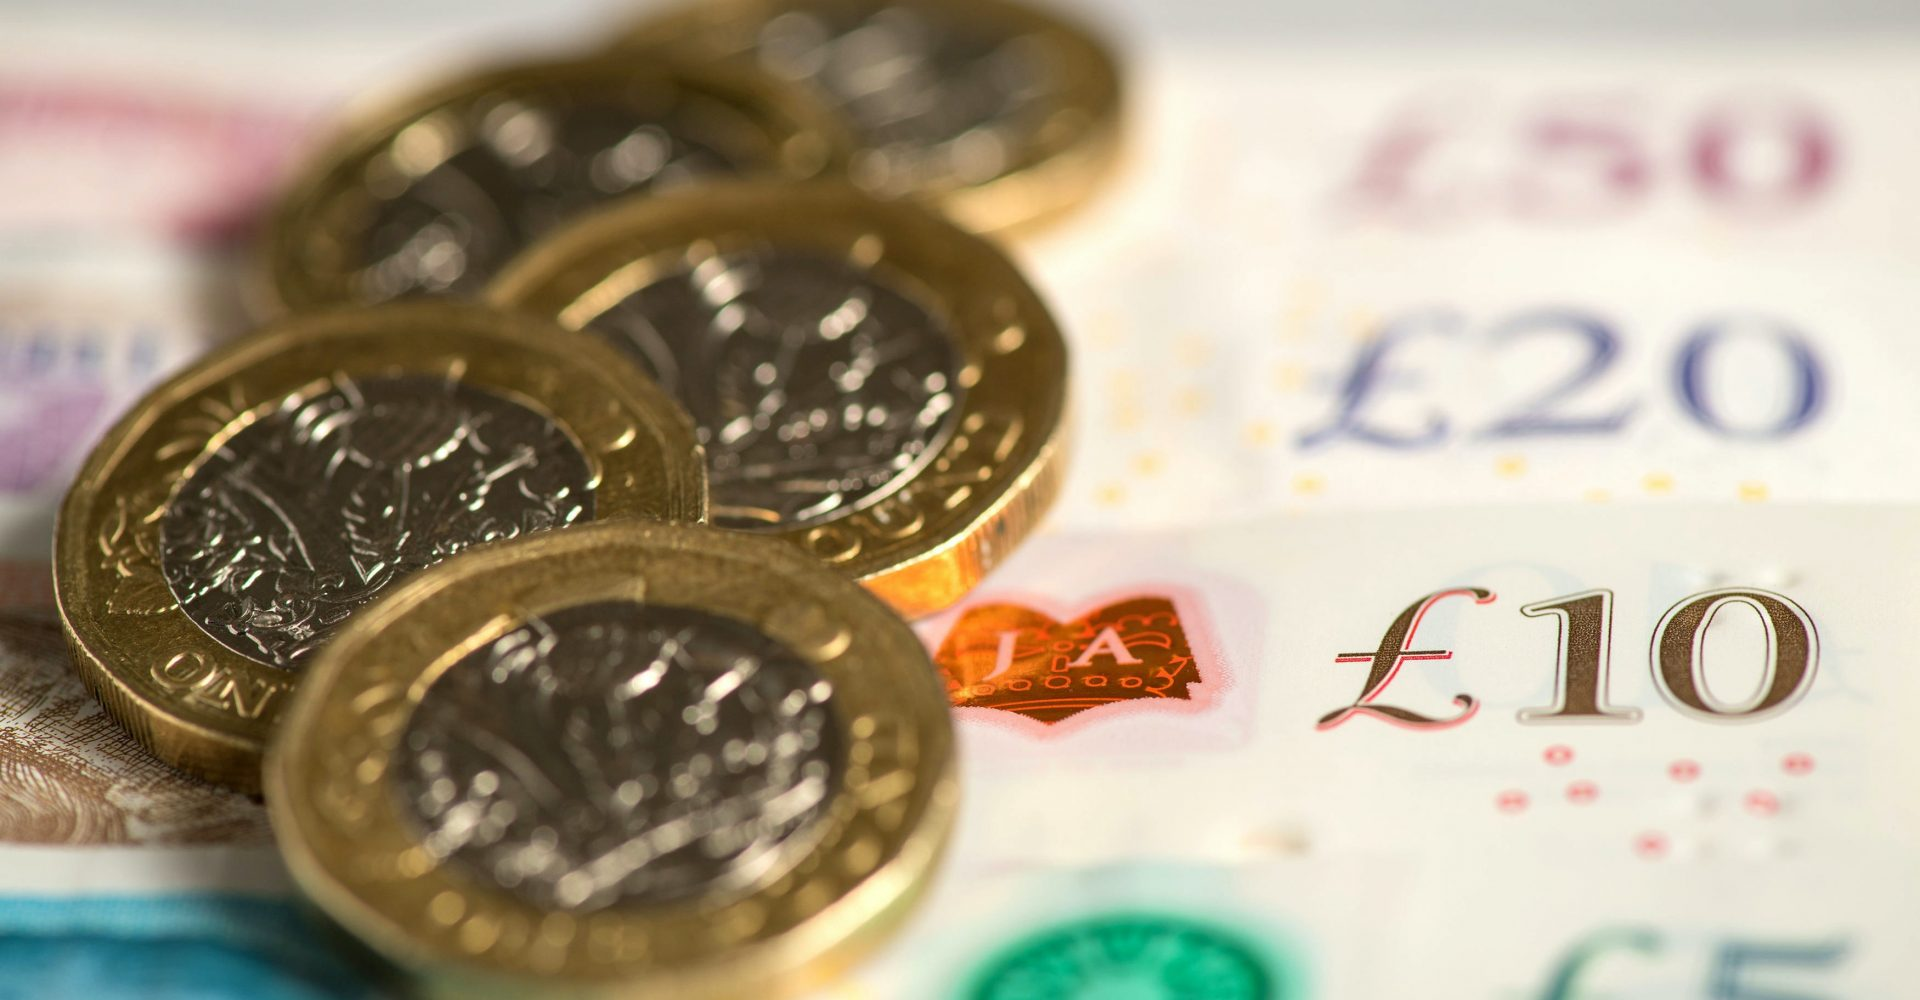 UK motorists spend almost £593m per year on insurance policy adjustments